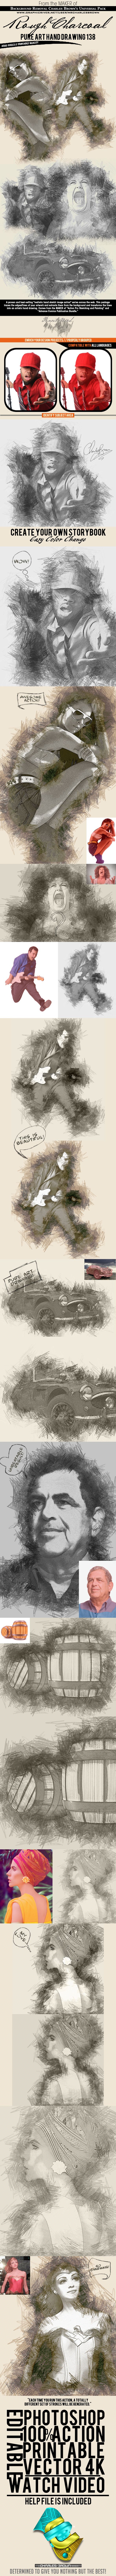 Pure Art Hand Drawing 138 – Rough Charcoal — Photoshop ABR #photoshop image action #Graphicriver image effects • Available here → https://graphicriver.net/item/pure-art-hand-drawing-138-rough-charcoal/13411258?ref=pxcr